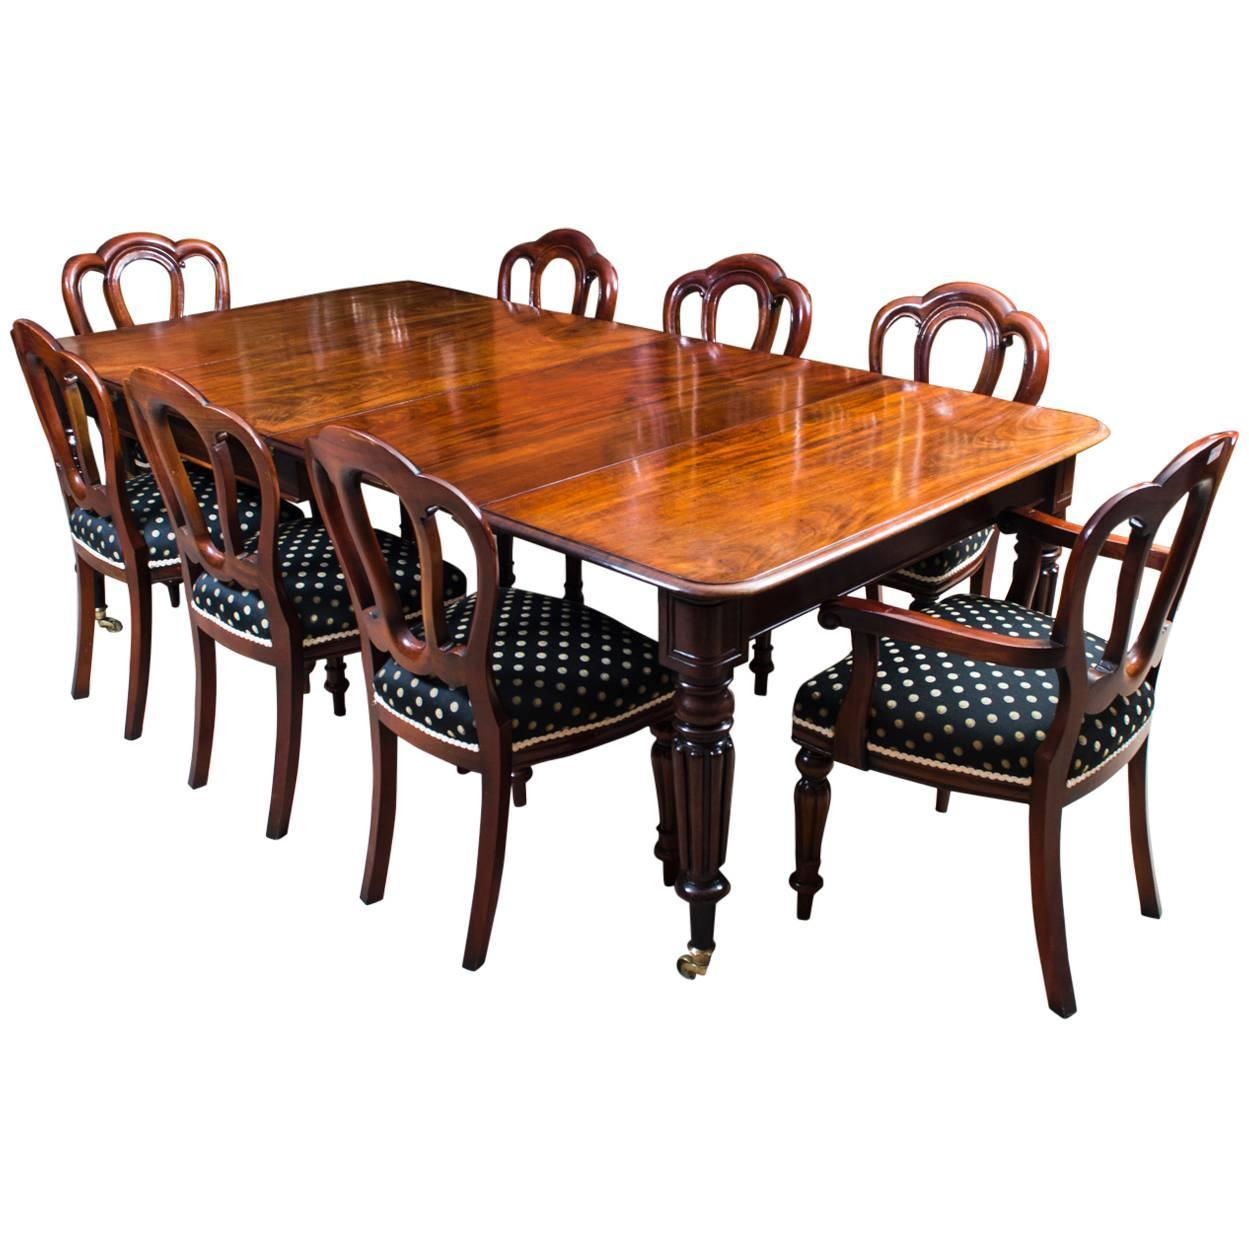 Antique Mahogany Dining Room Furniture: Antique Regency Mahogany Dining Table Eight Admiralty